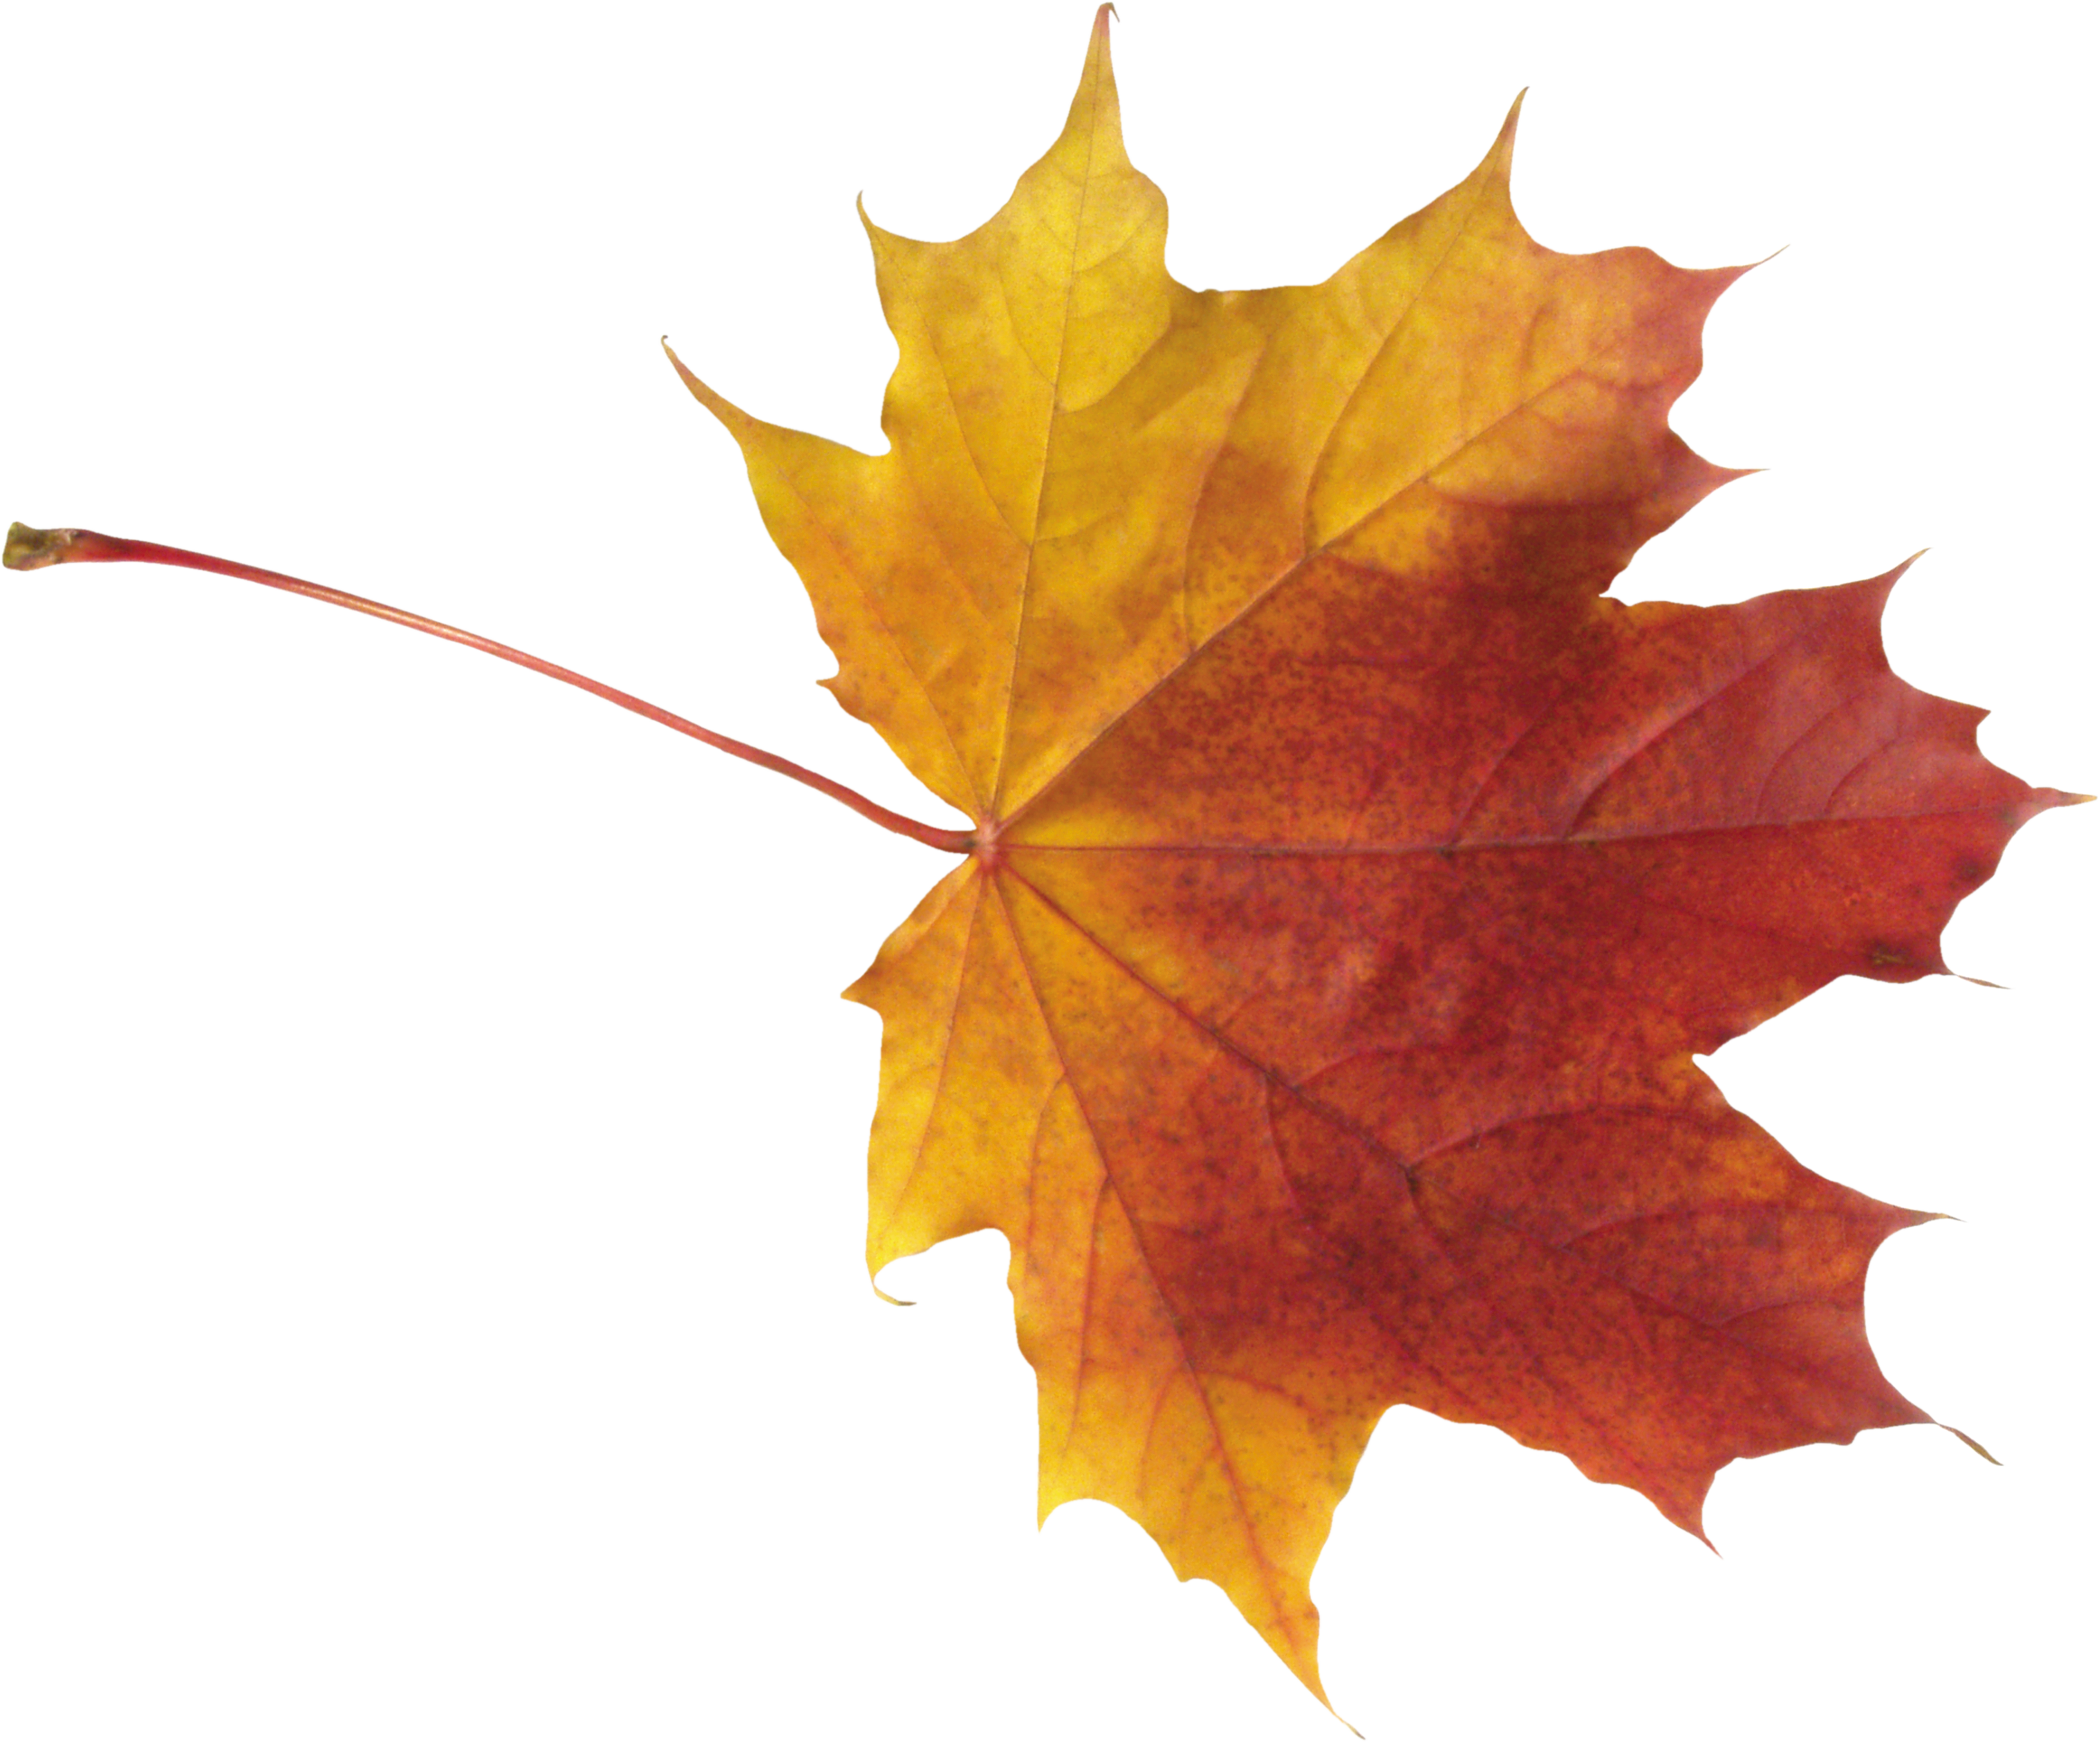 Autumn Leaf Png Image Fall Leaves Png Leaves Autumn Leaves